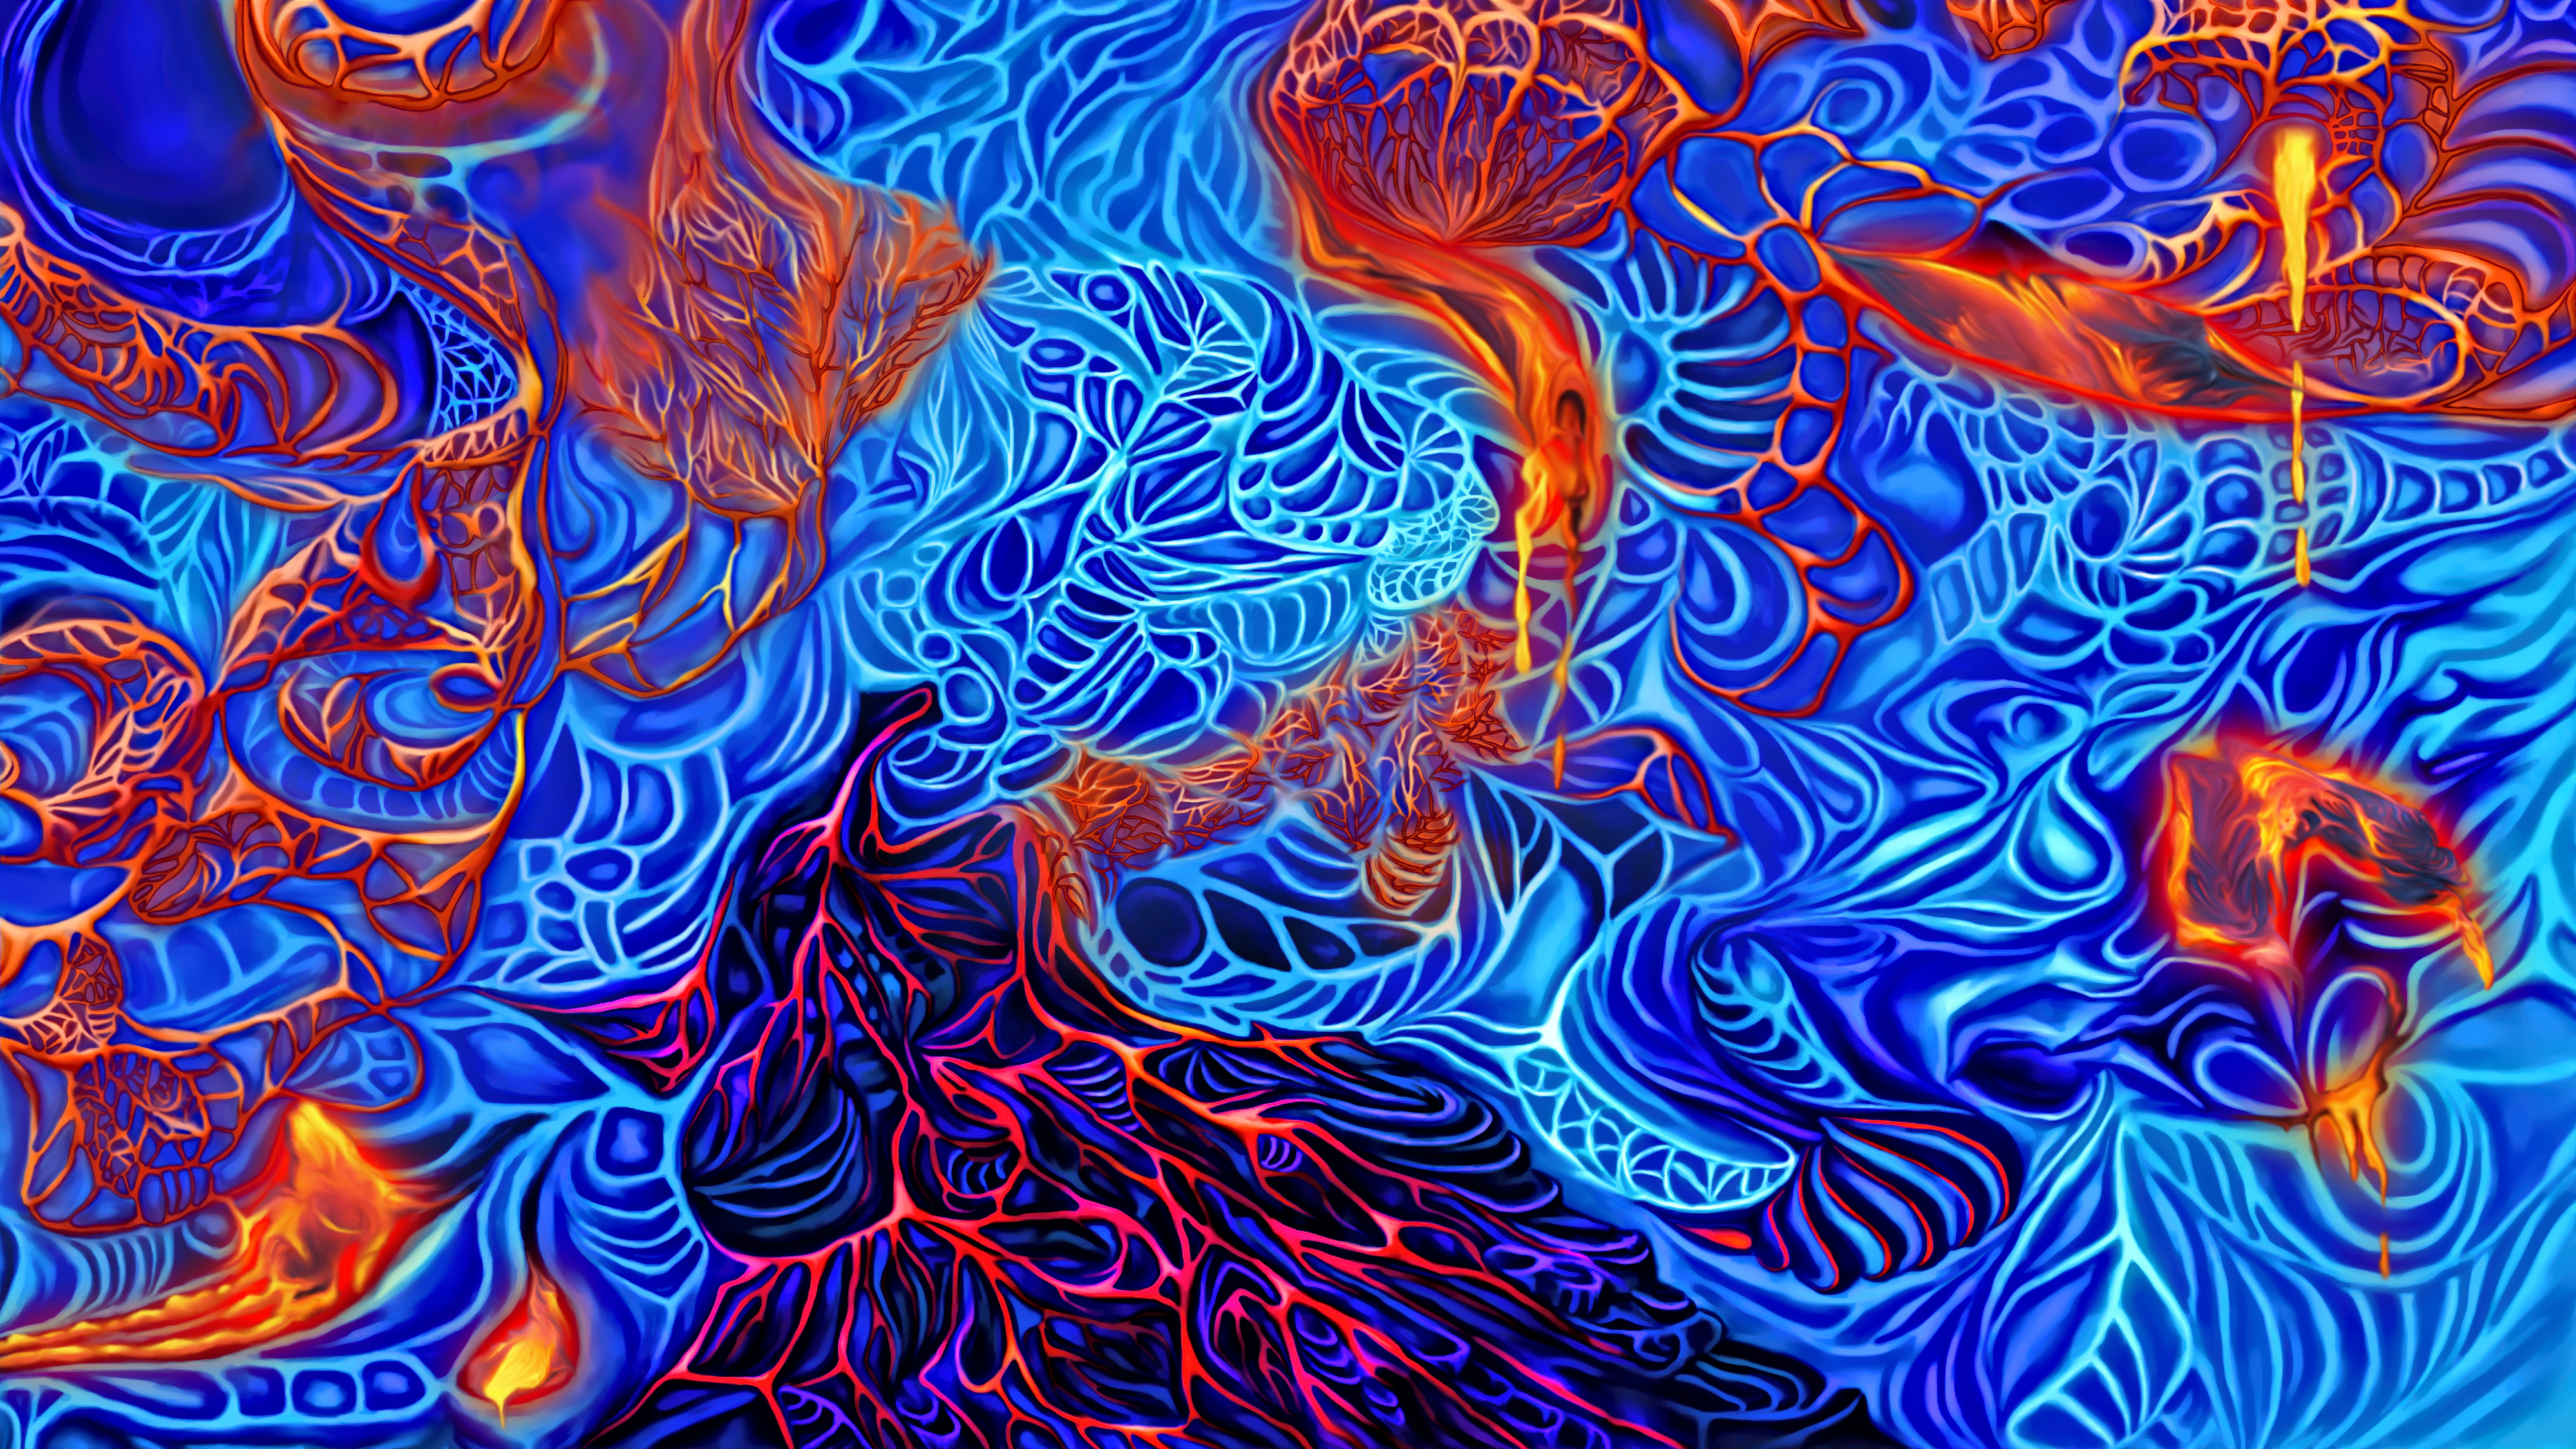 Lava cave abstraction by exobiology